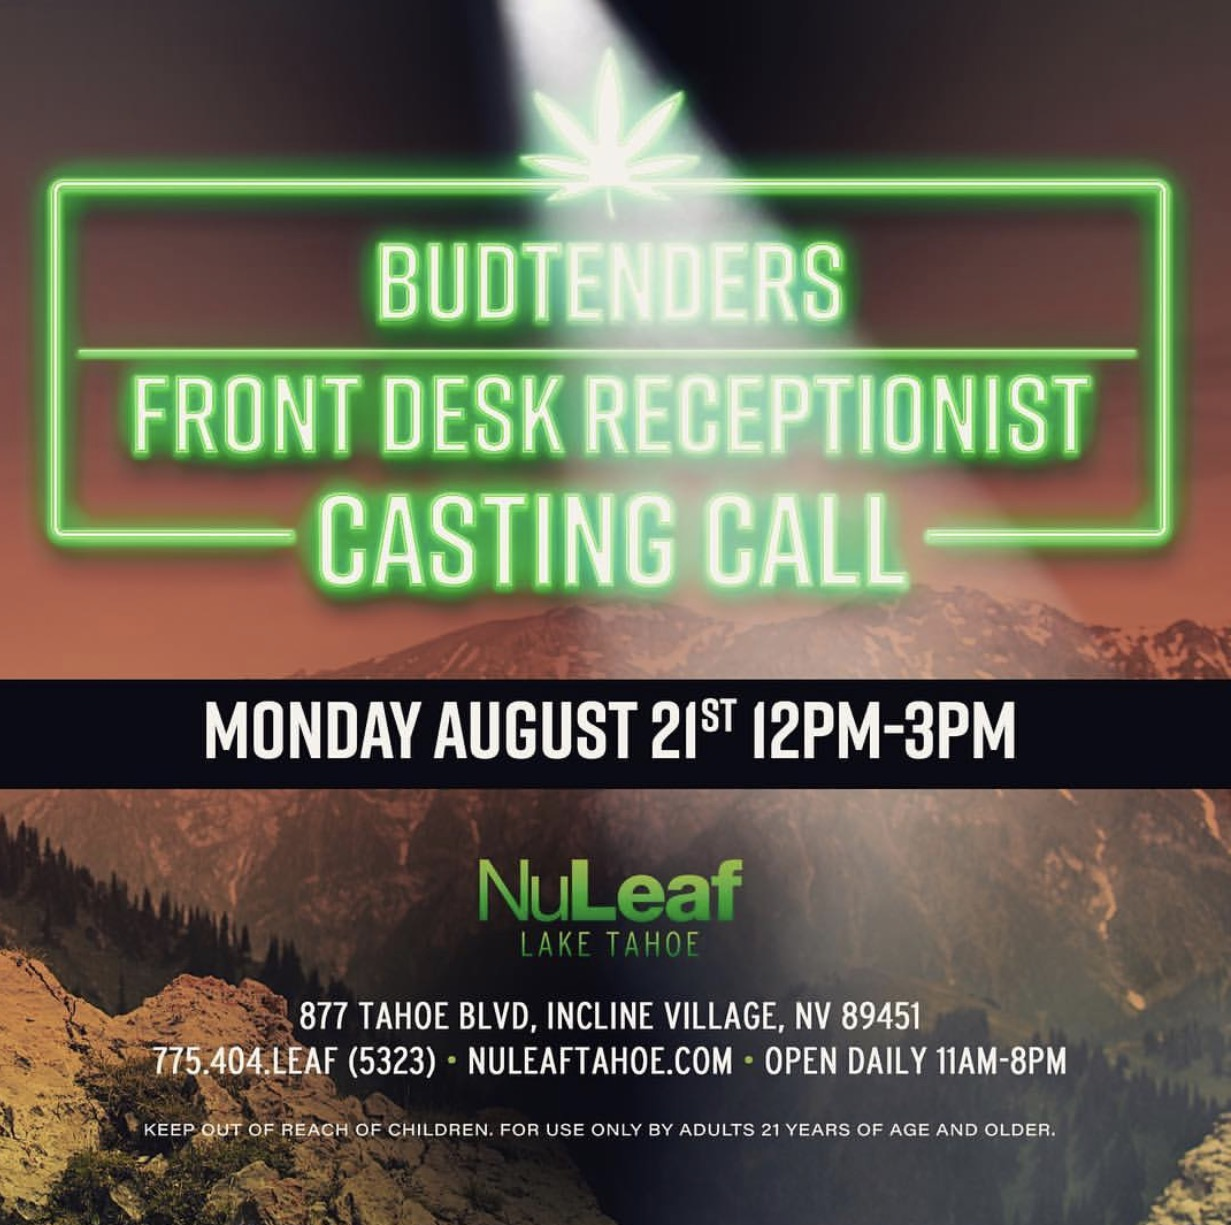 budtender casting call